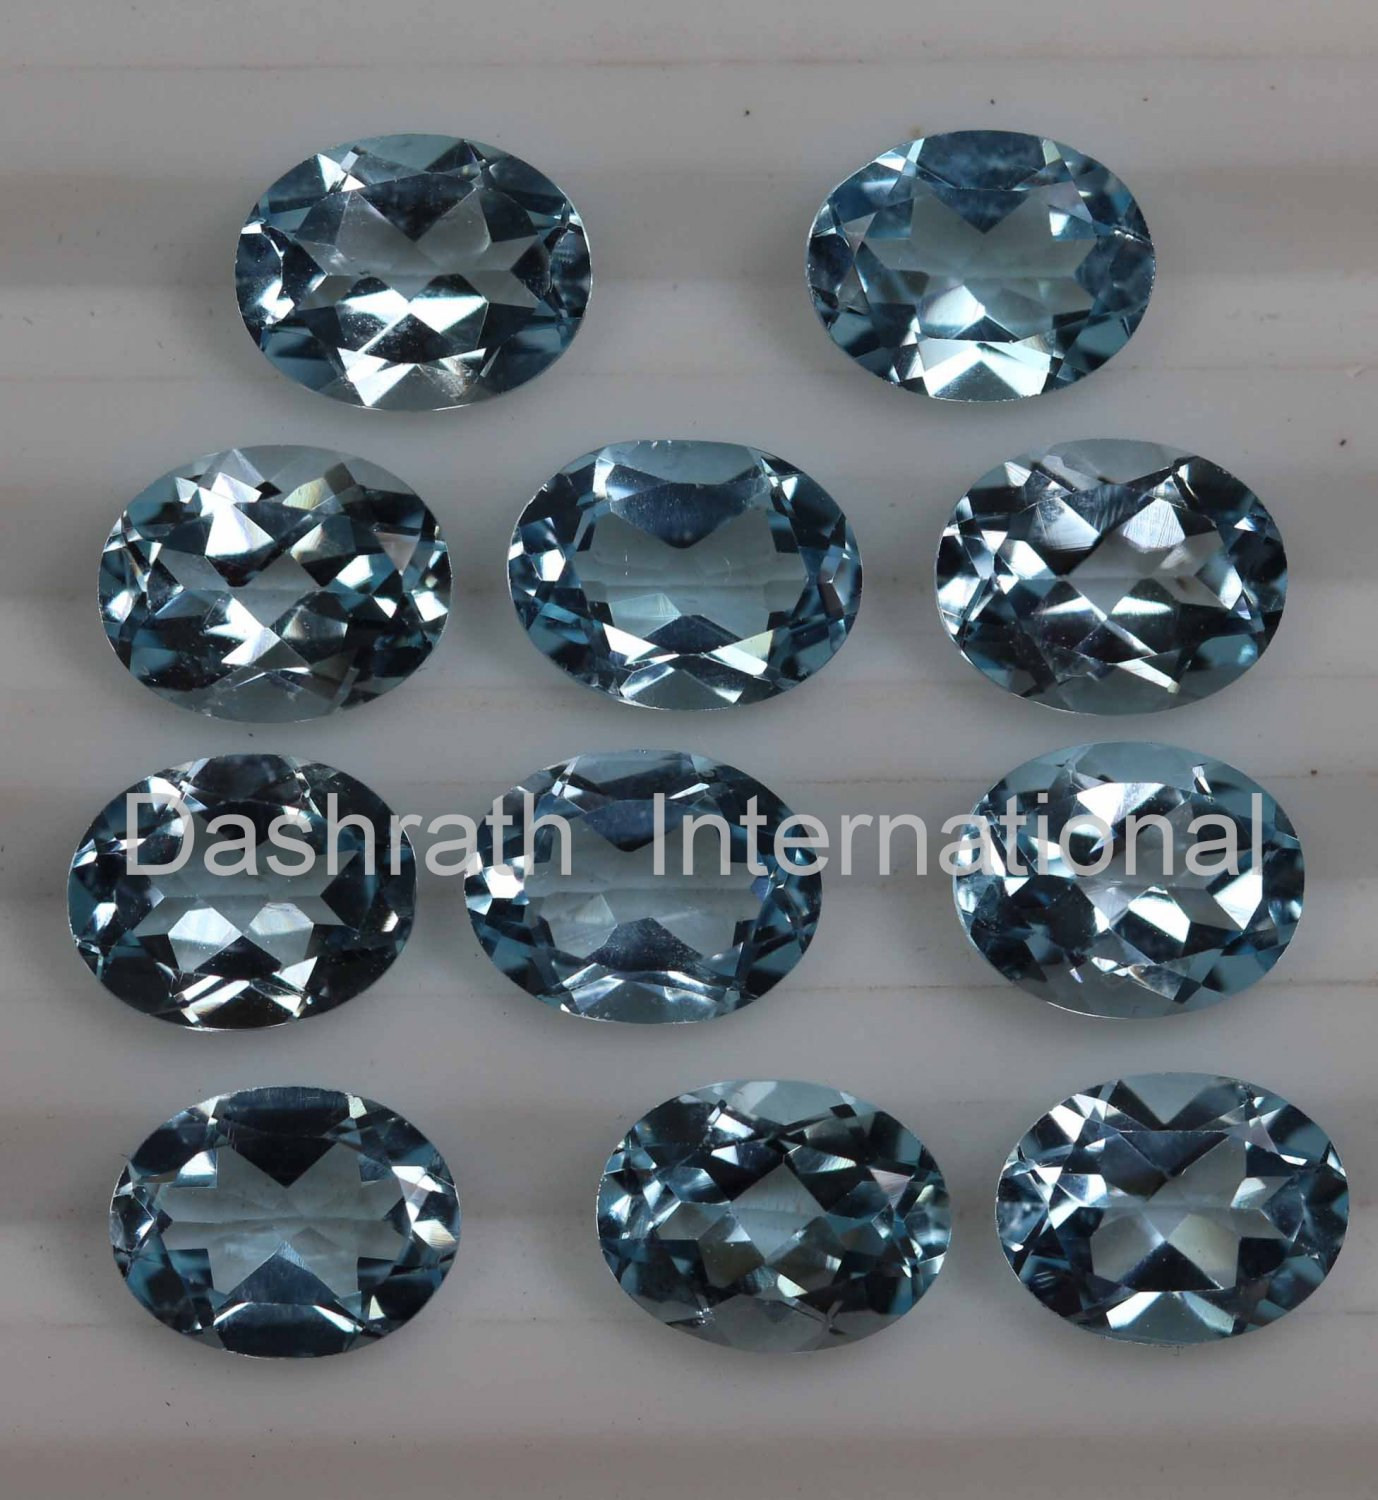 5x3mm Natural Sky Blue Topaz Faceted Cut Oval  100 Pieces Lot  Top Quality Loose Gemstone